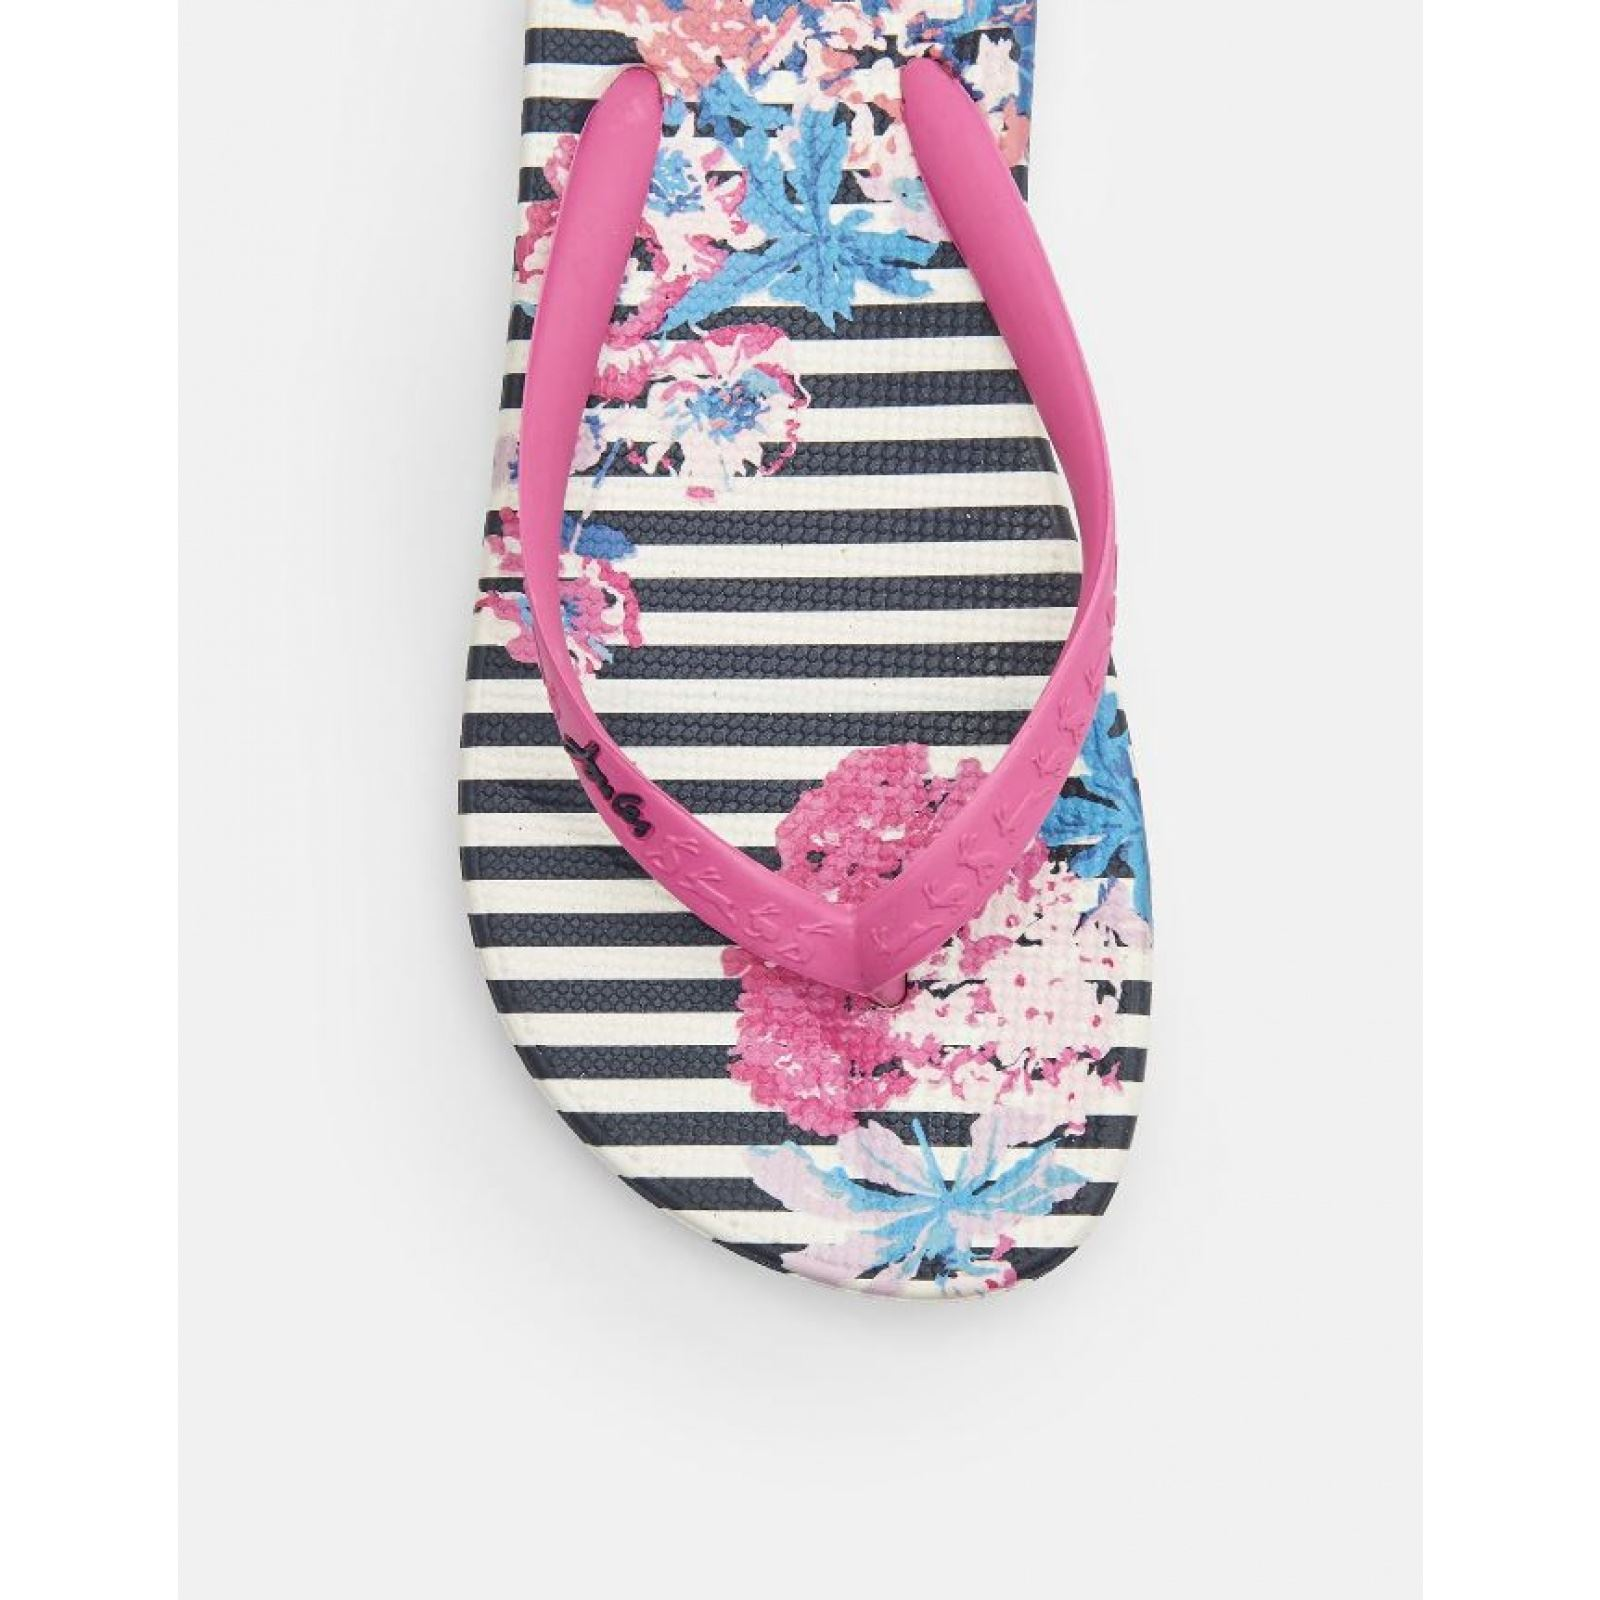 Joules-Flip-Flops-Sandals-Summer-Flip-Flop-NEW-2019-COLOURS thumbnail 24